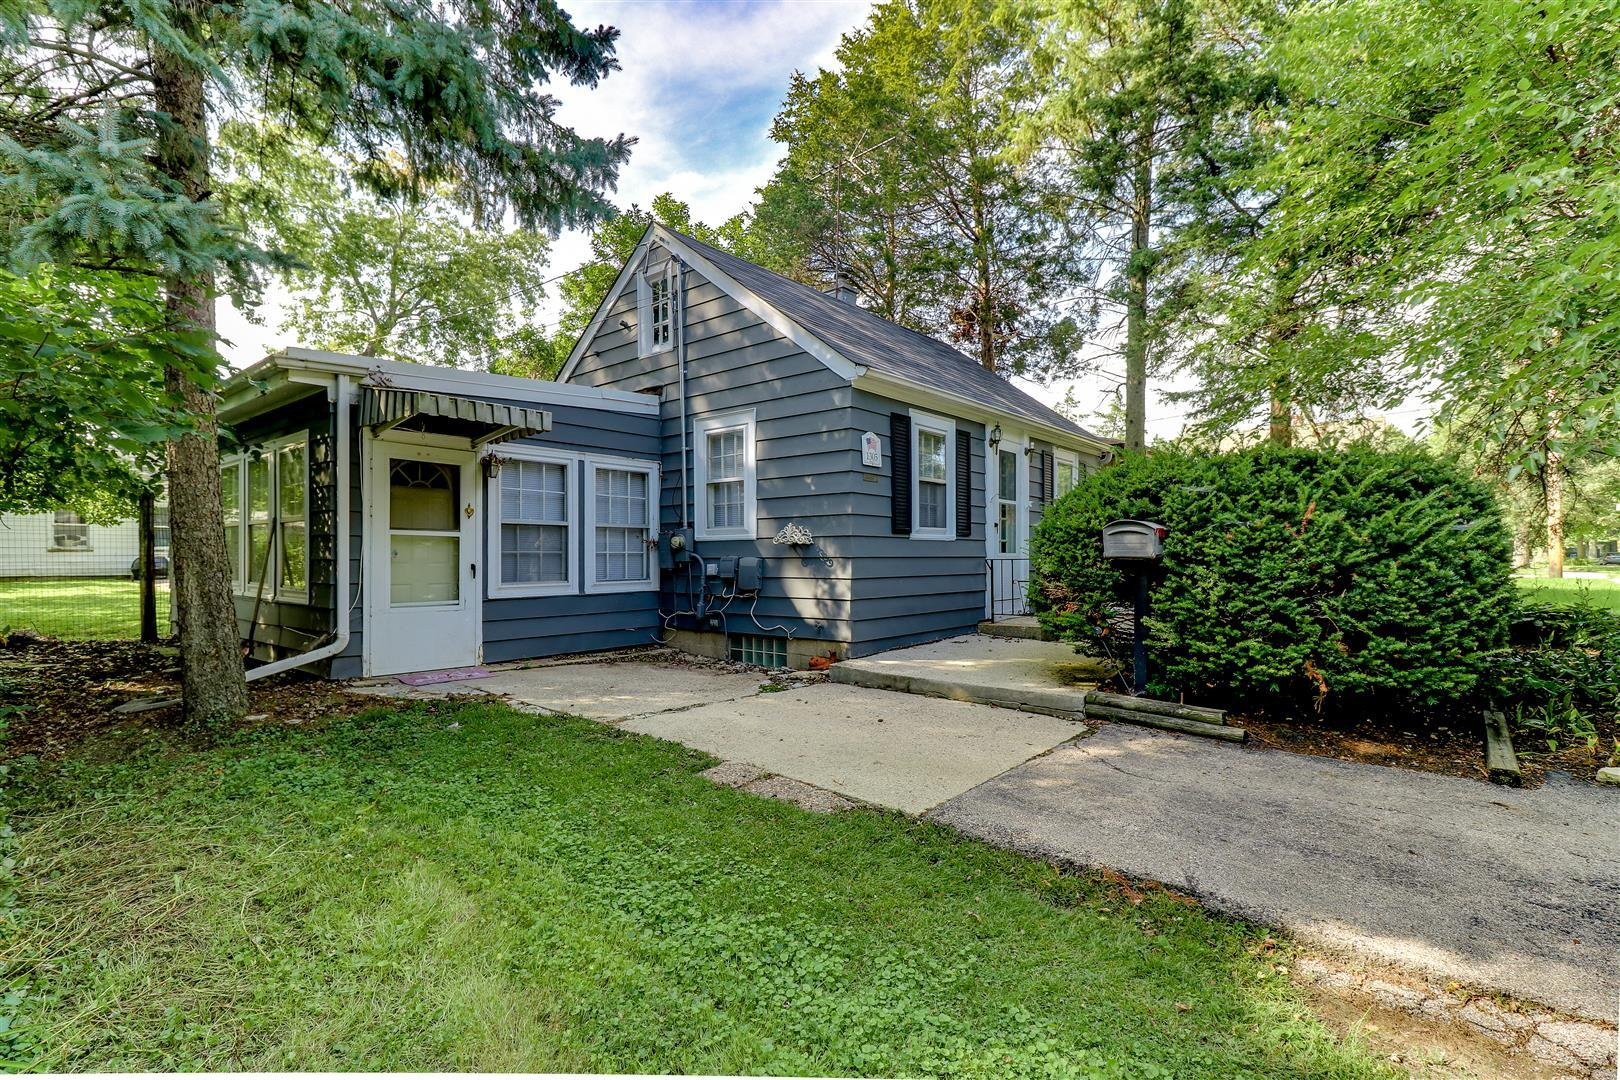 Photo for 1305 Elm Street, St. Charles, IL 60174 (MLS # 10522856)